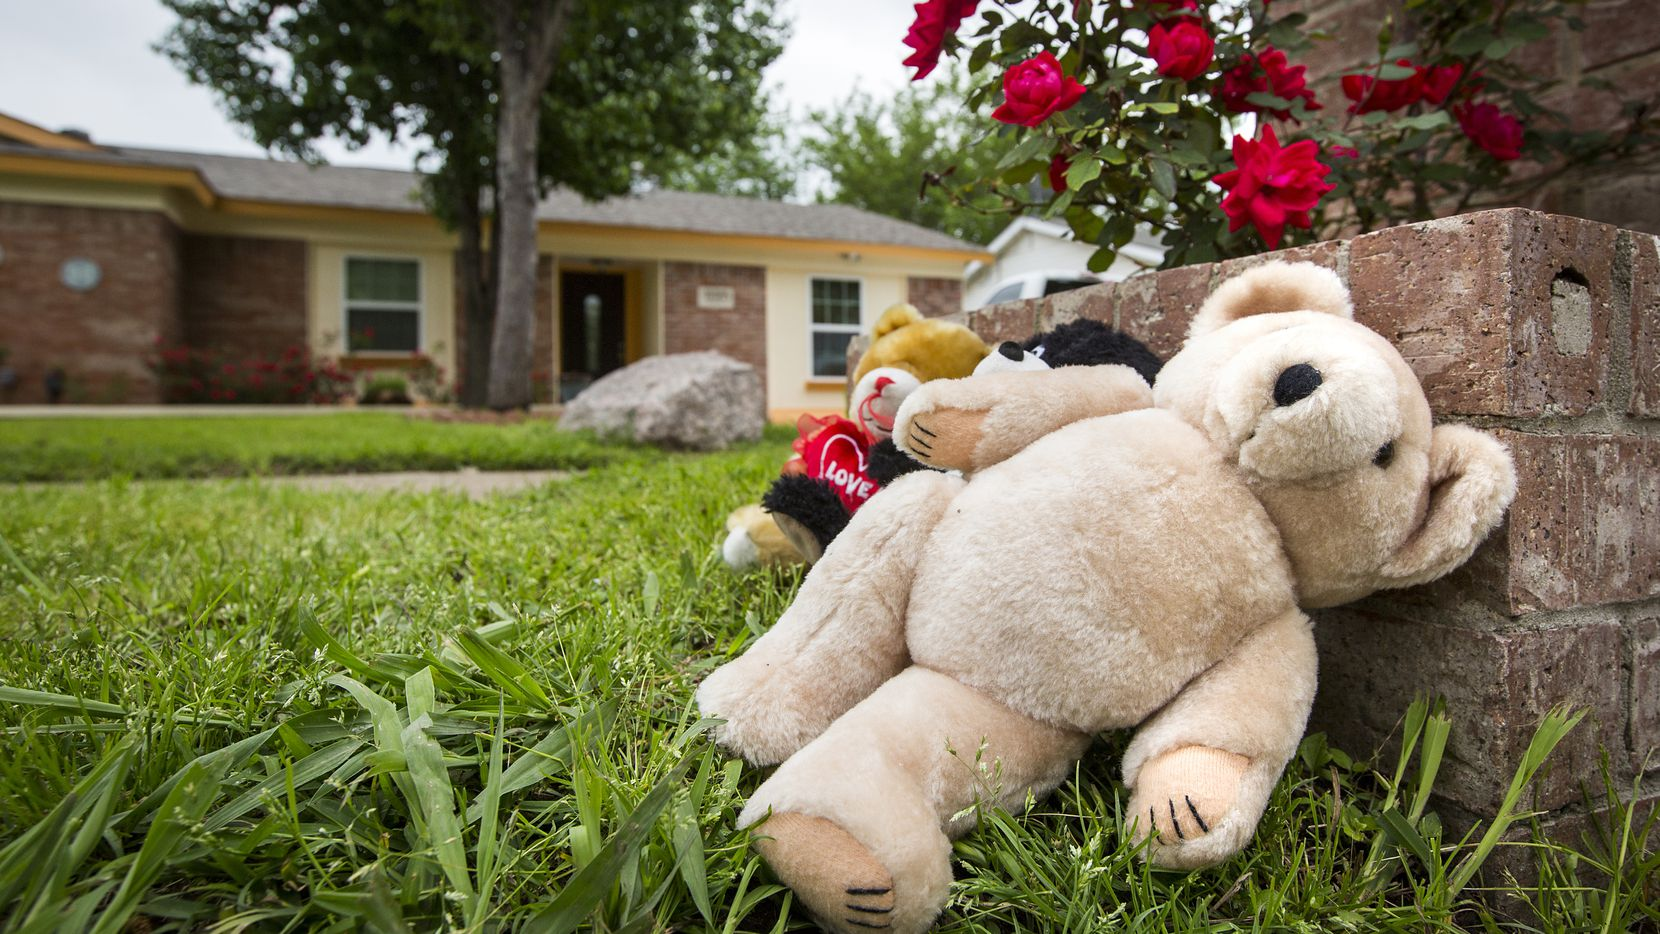 Teddy bears were left at the Balch Springs home where a 2-year-old boy starved to death at a commune where several church members lived.